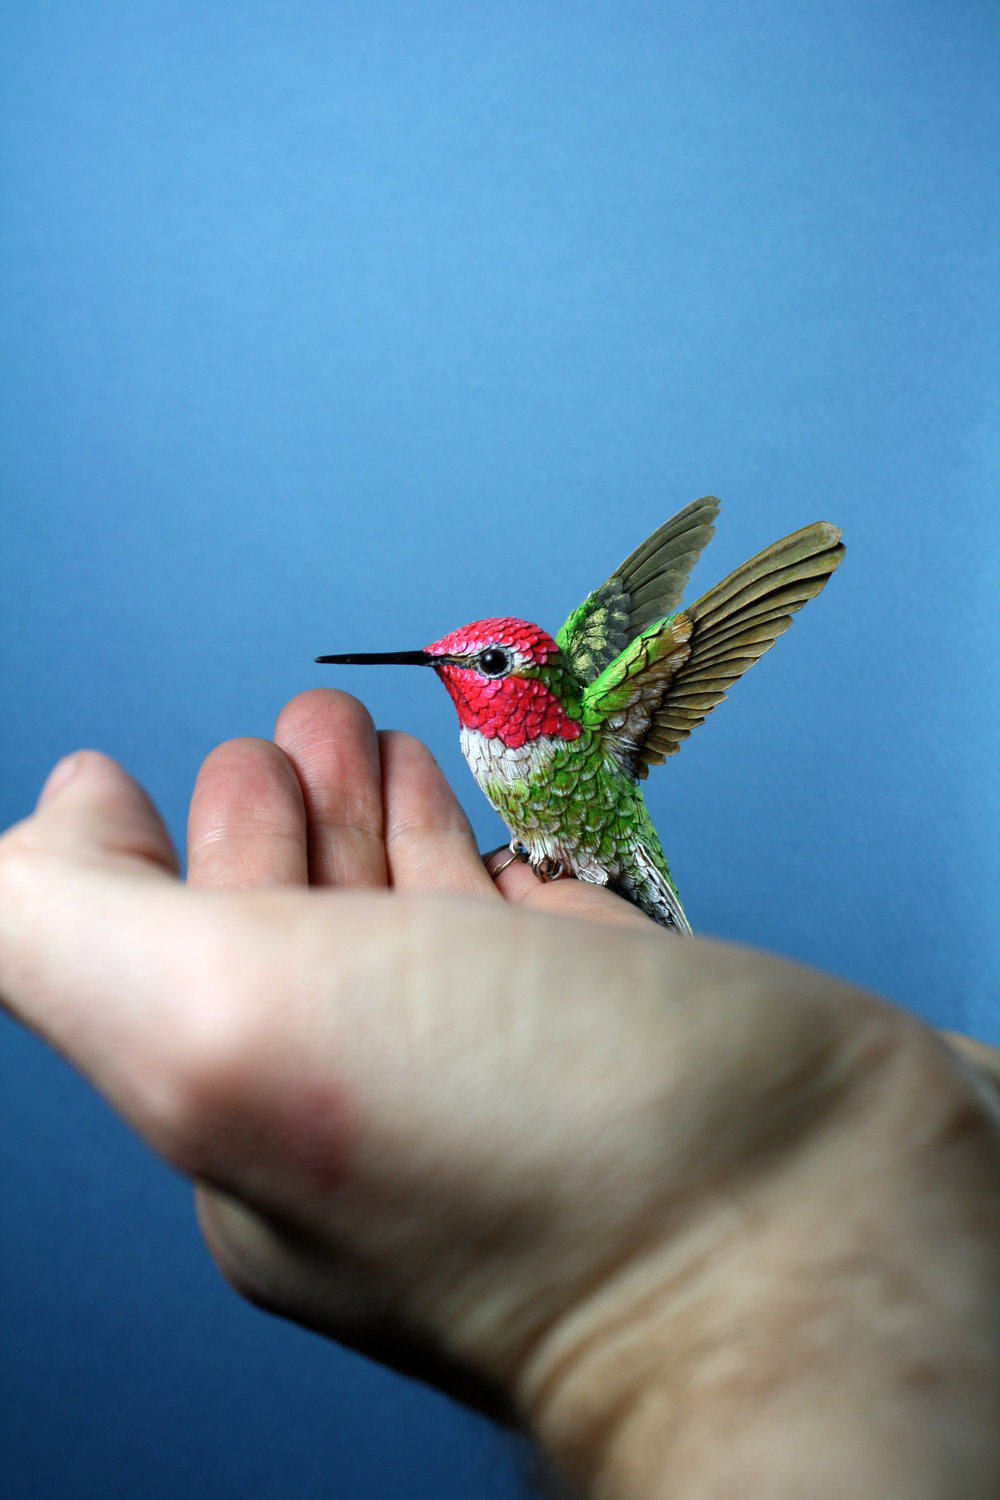 All the hummingbirds are designed and made to be life size.